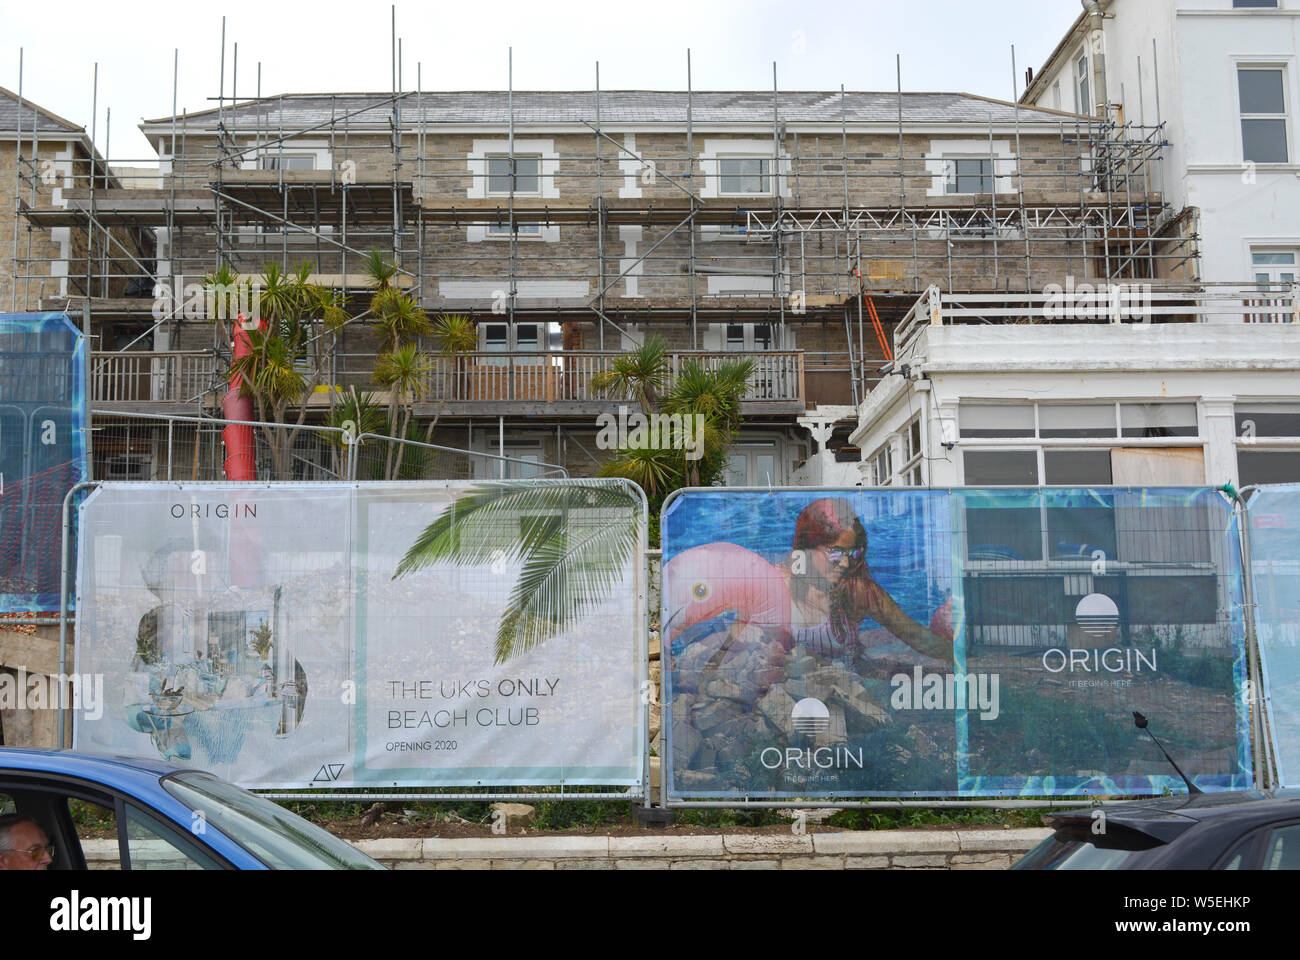 The Ocean Hotel in Sandown on the Isle of Wight, is left in a state of disrepair and the hotel is now in the hands of administrators. Stock Photo